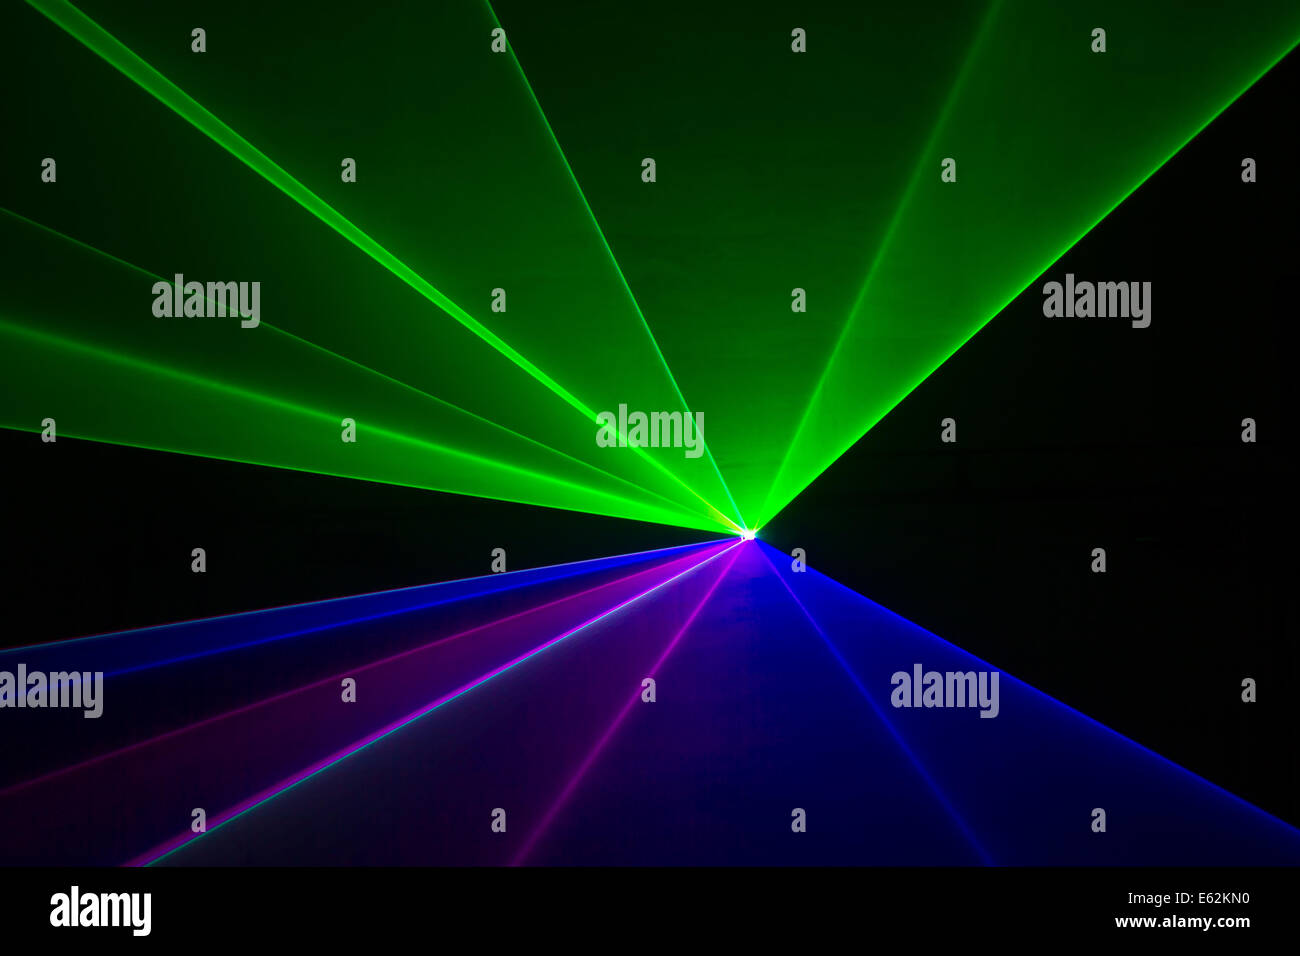 Blue, green, and red laser beams - Stock Image